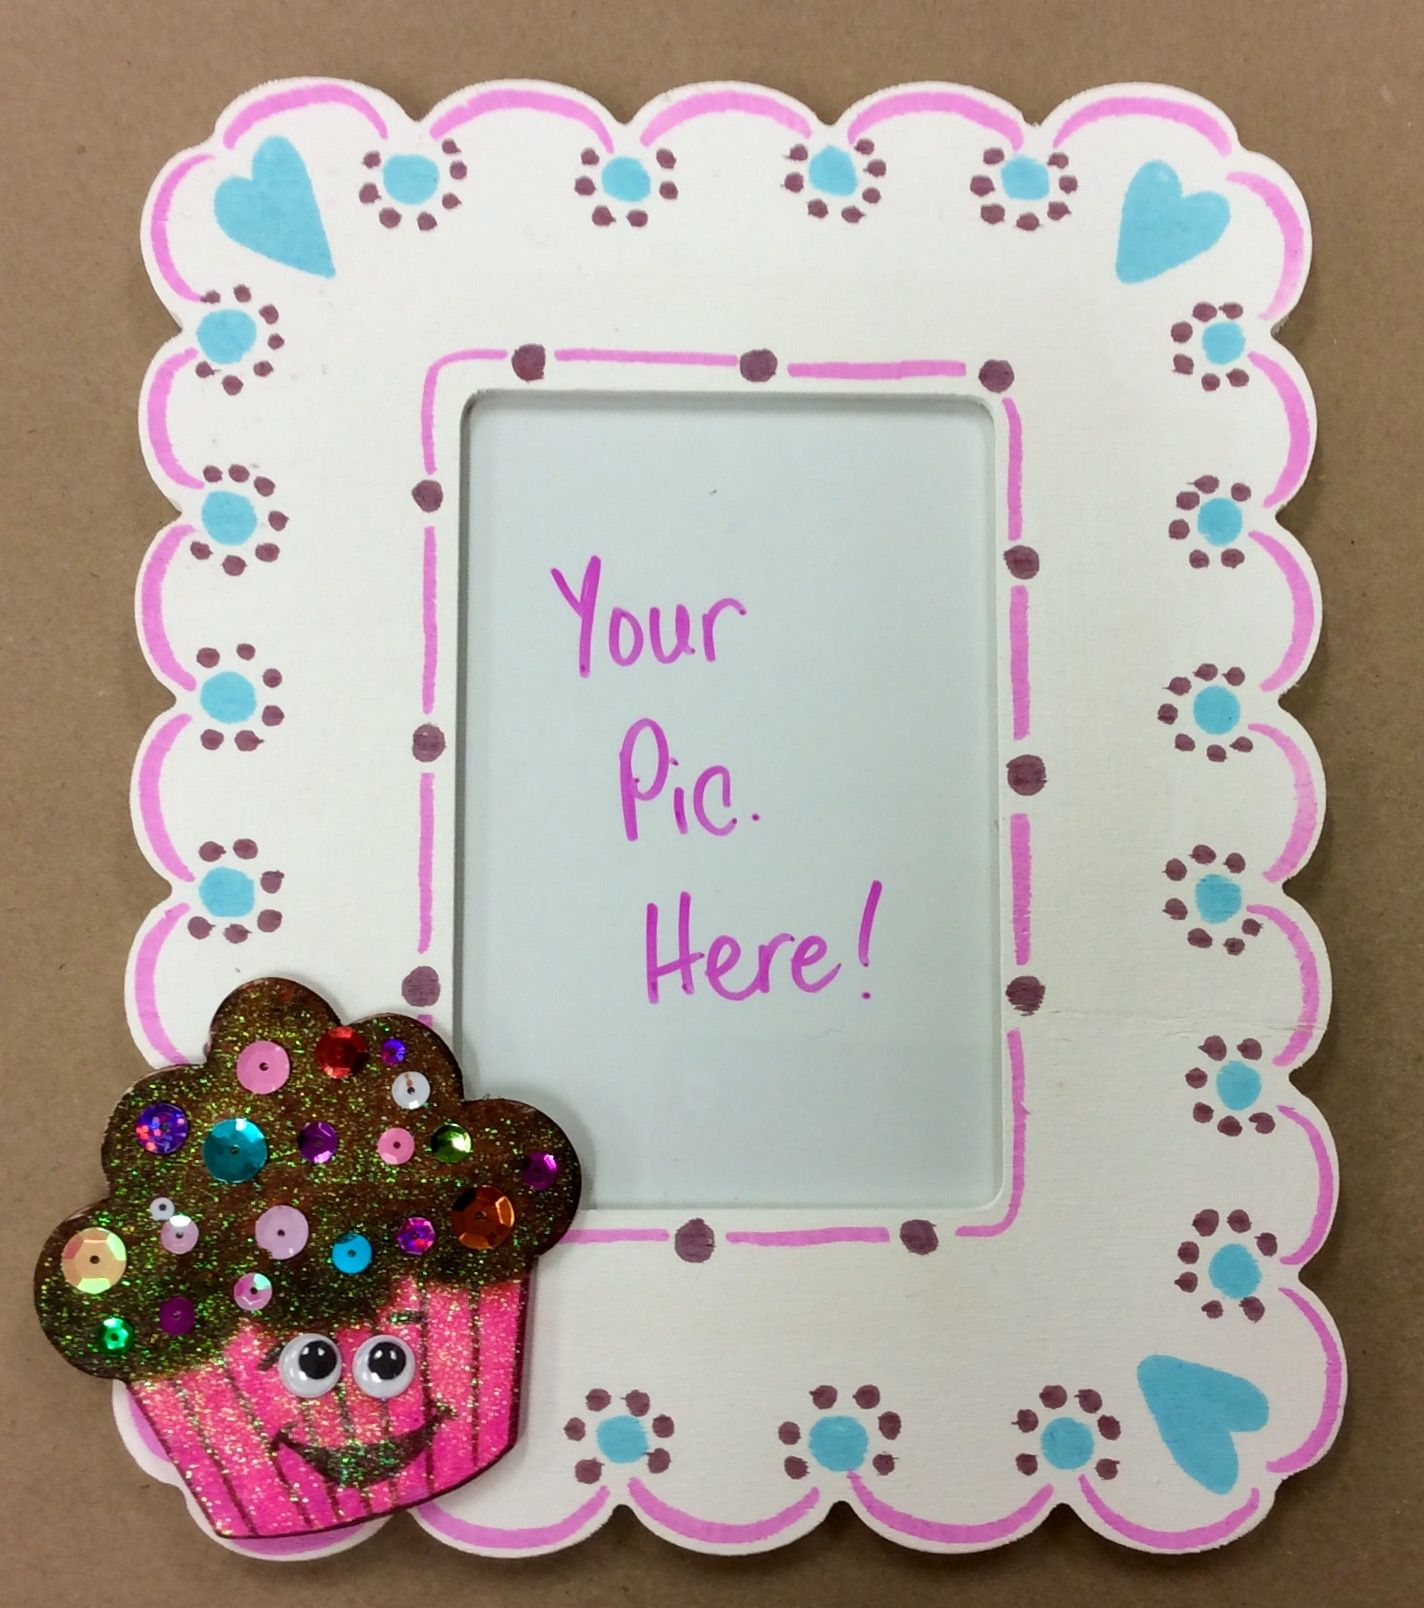 shopkins cupcake frame craft i made for ac moore pre paint frames white